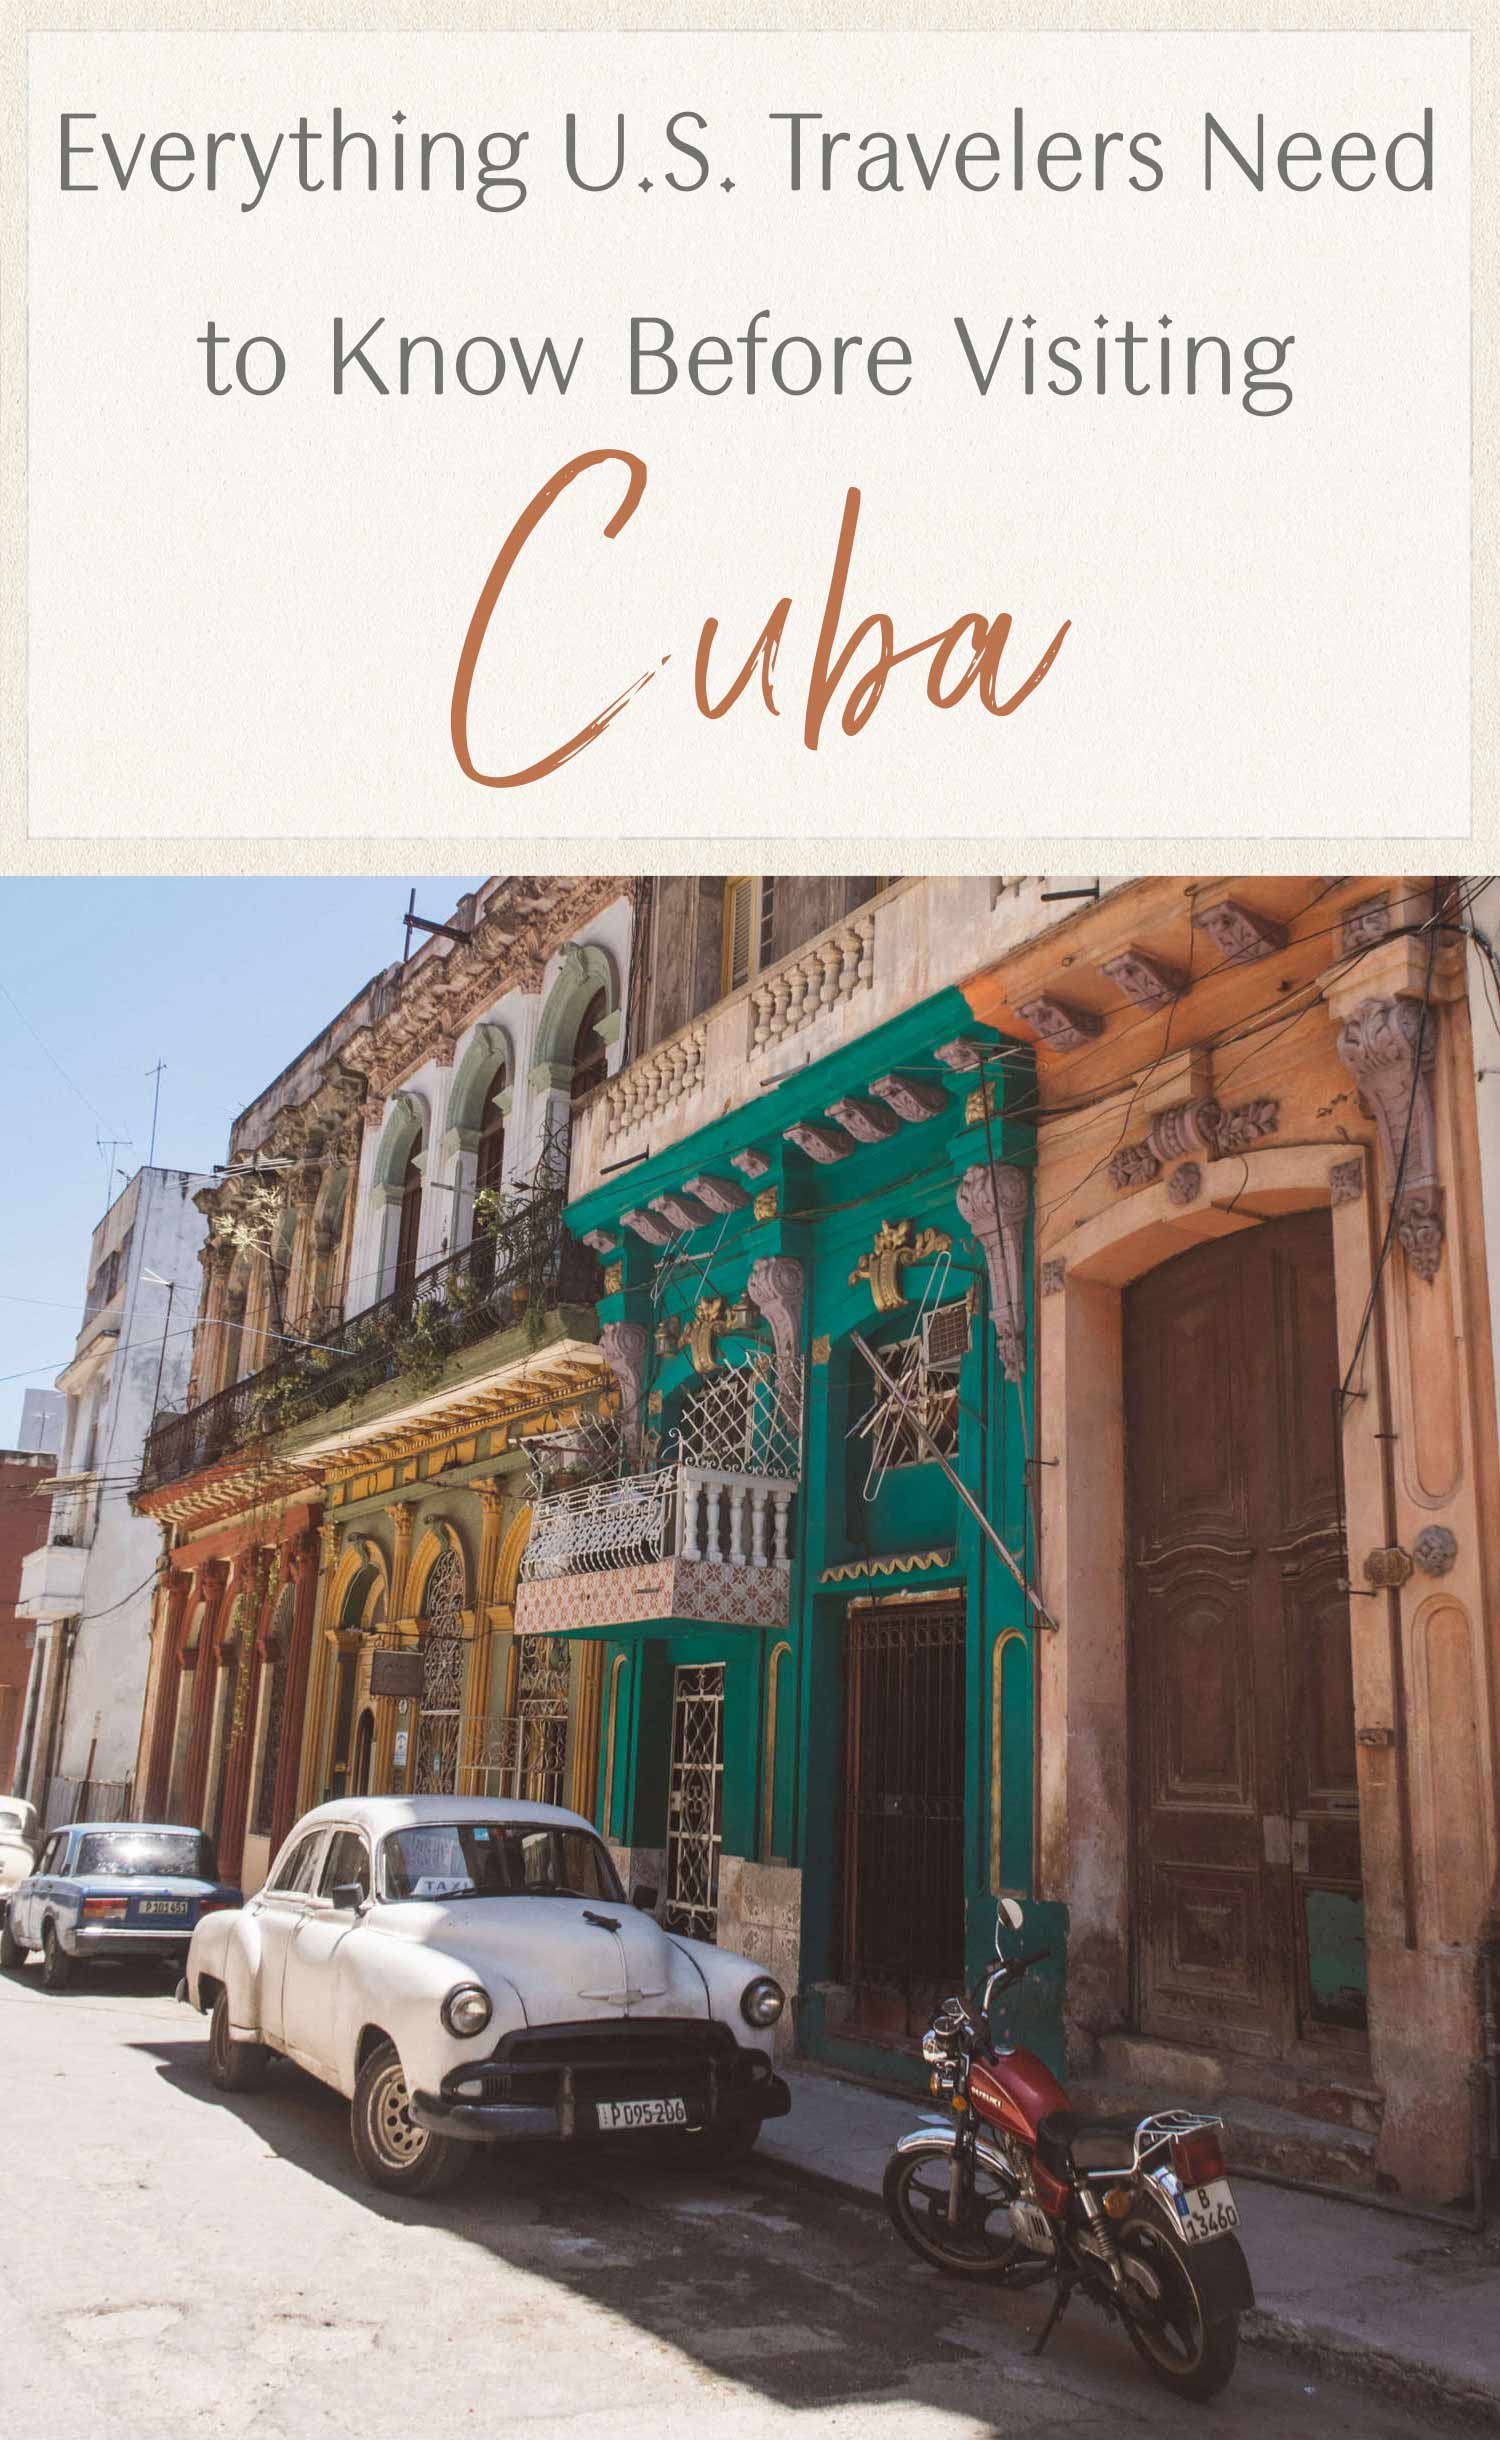 Everything U.S. Travelers Need to Know Before Visiting Cuba